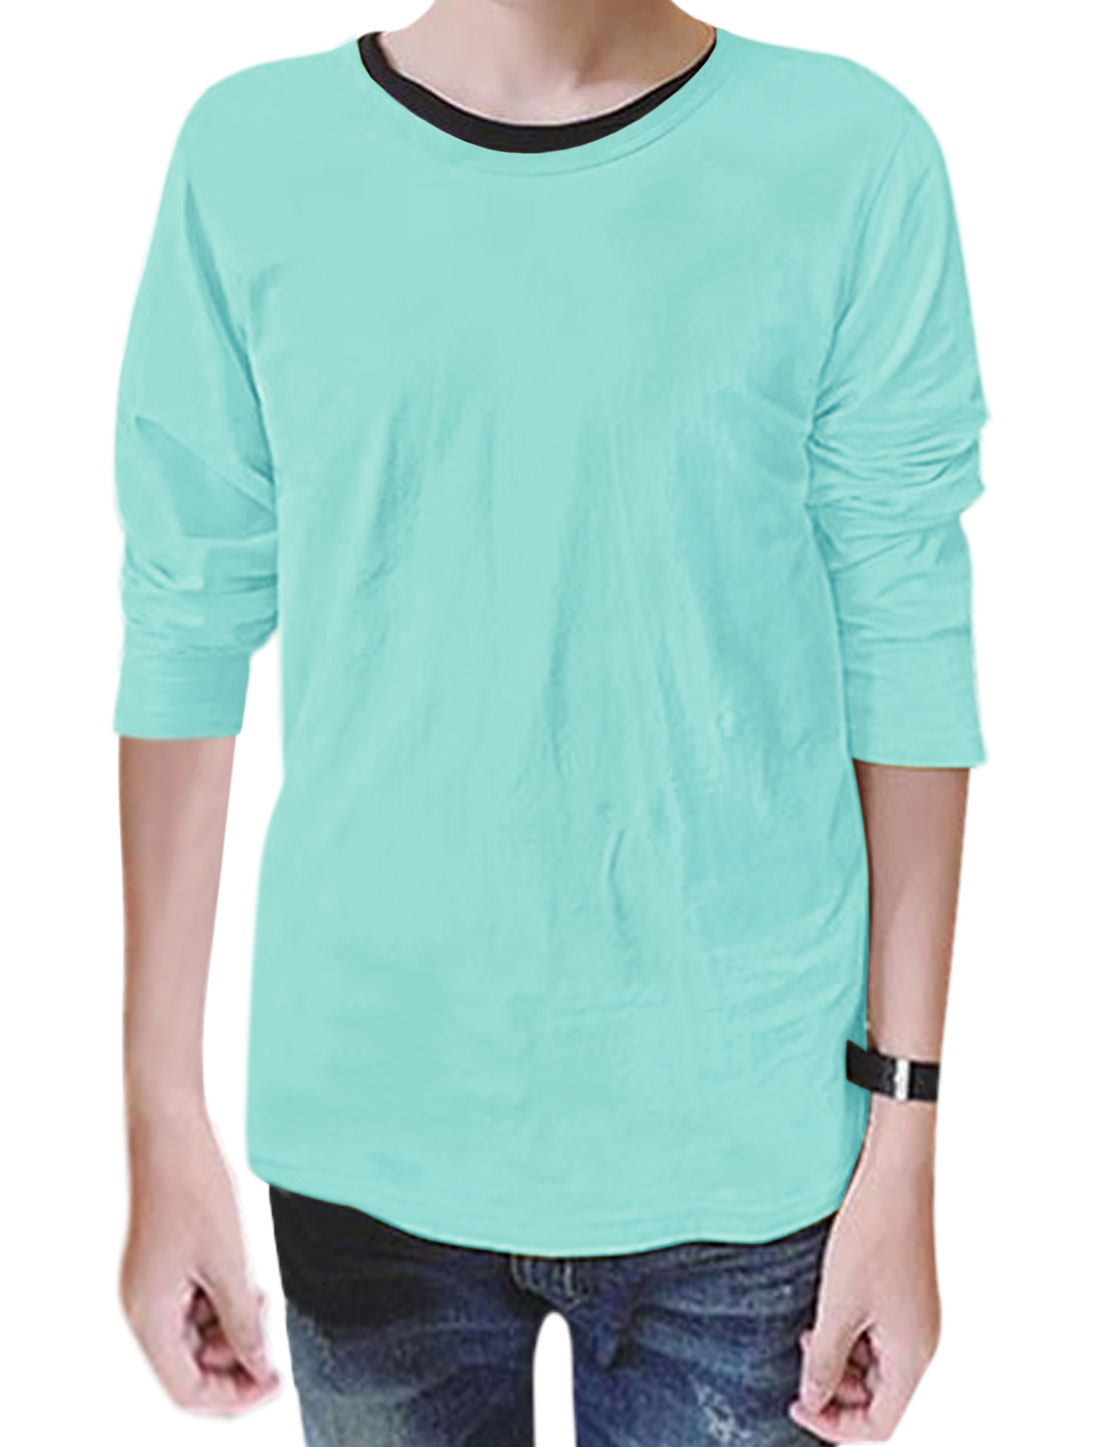 Man Round Neck Long Sleeves Slim Fit T-Shirt Light Blue M